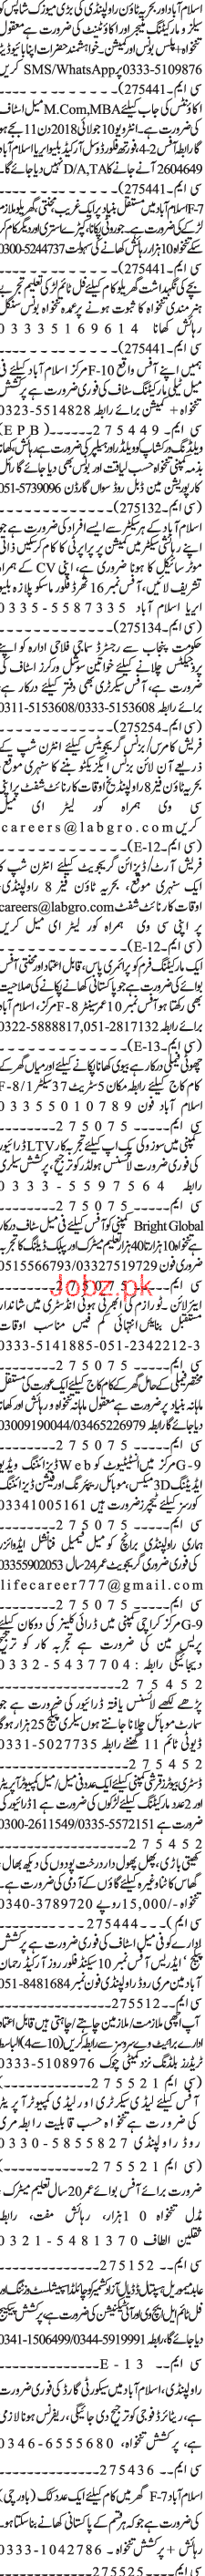 Marketing Staff, Accountant, Assistants Job Opportunity